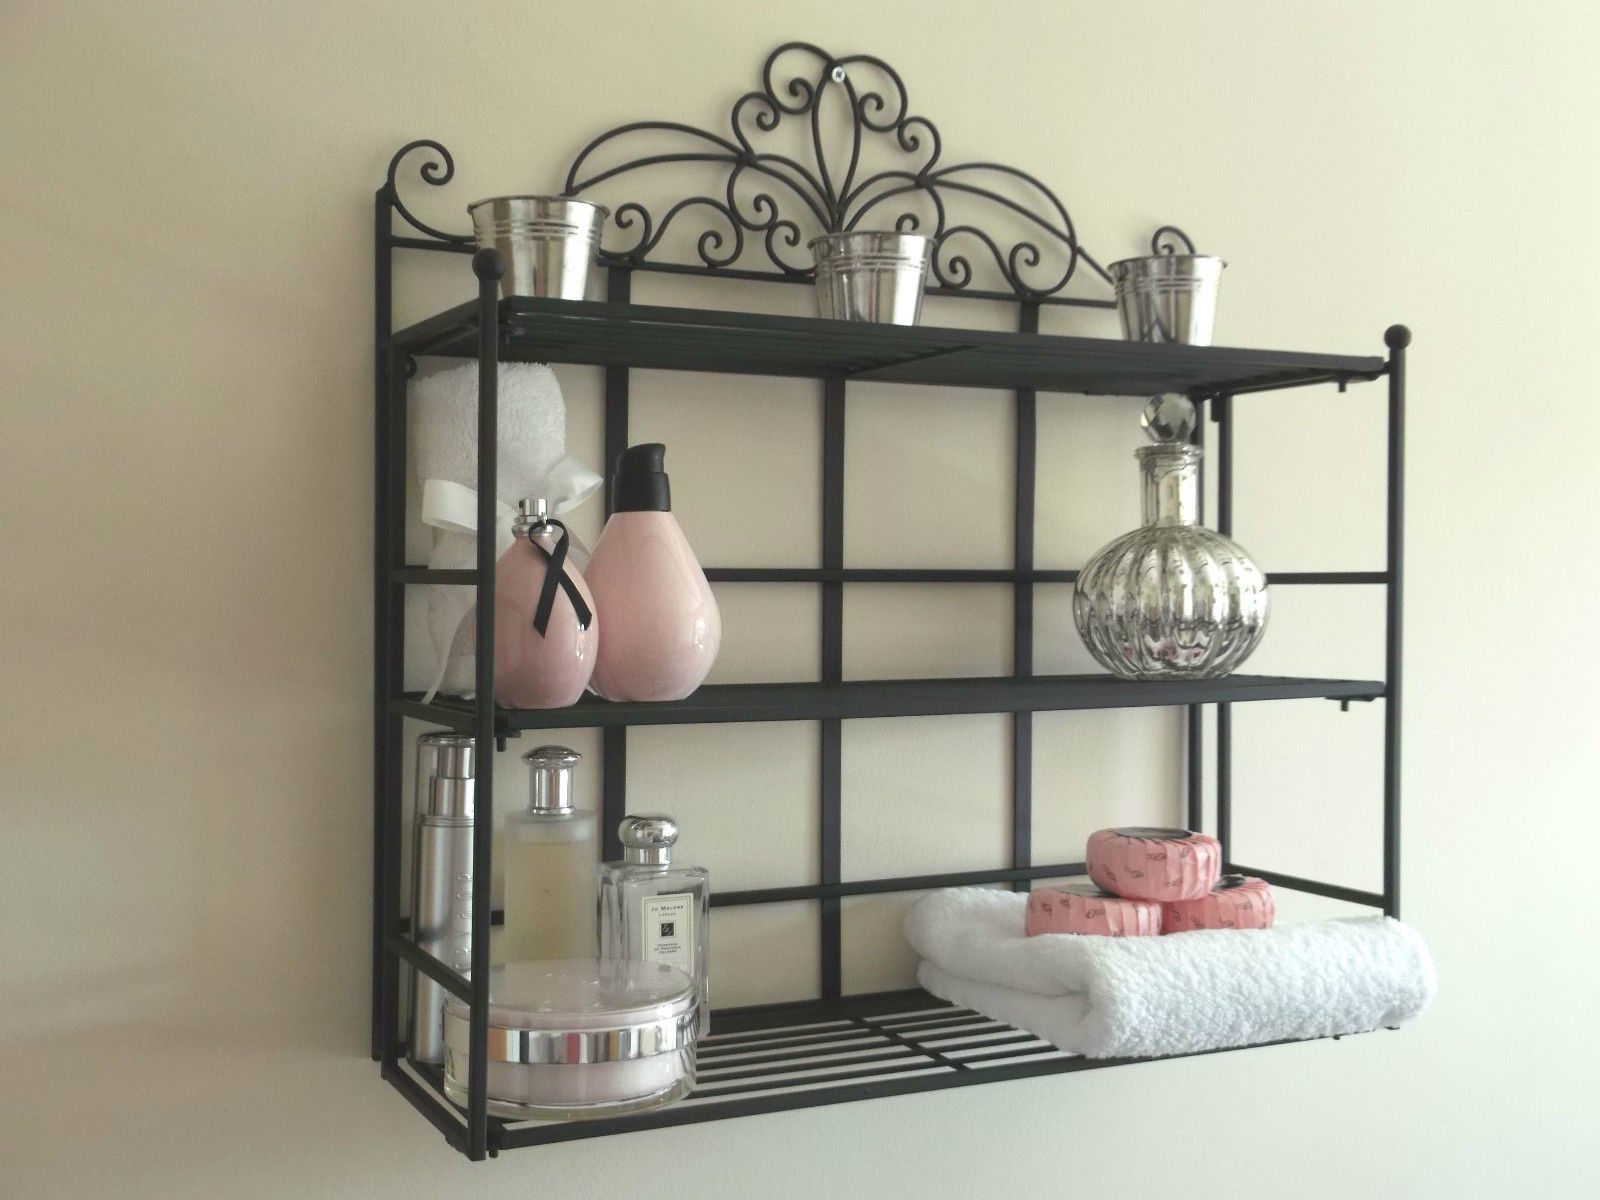 Black metal wall mounted towel rail shelf amazing grace interiors french vintage style black metal wall shelf unit amipublicfo Image collections